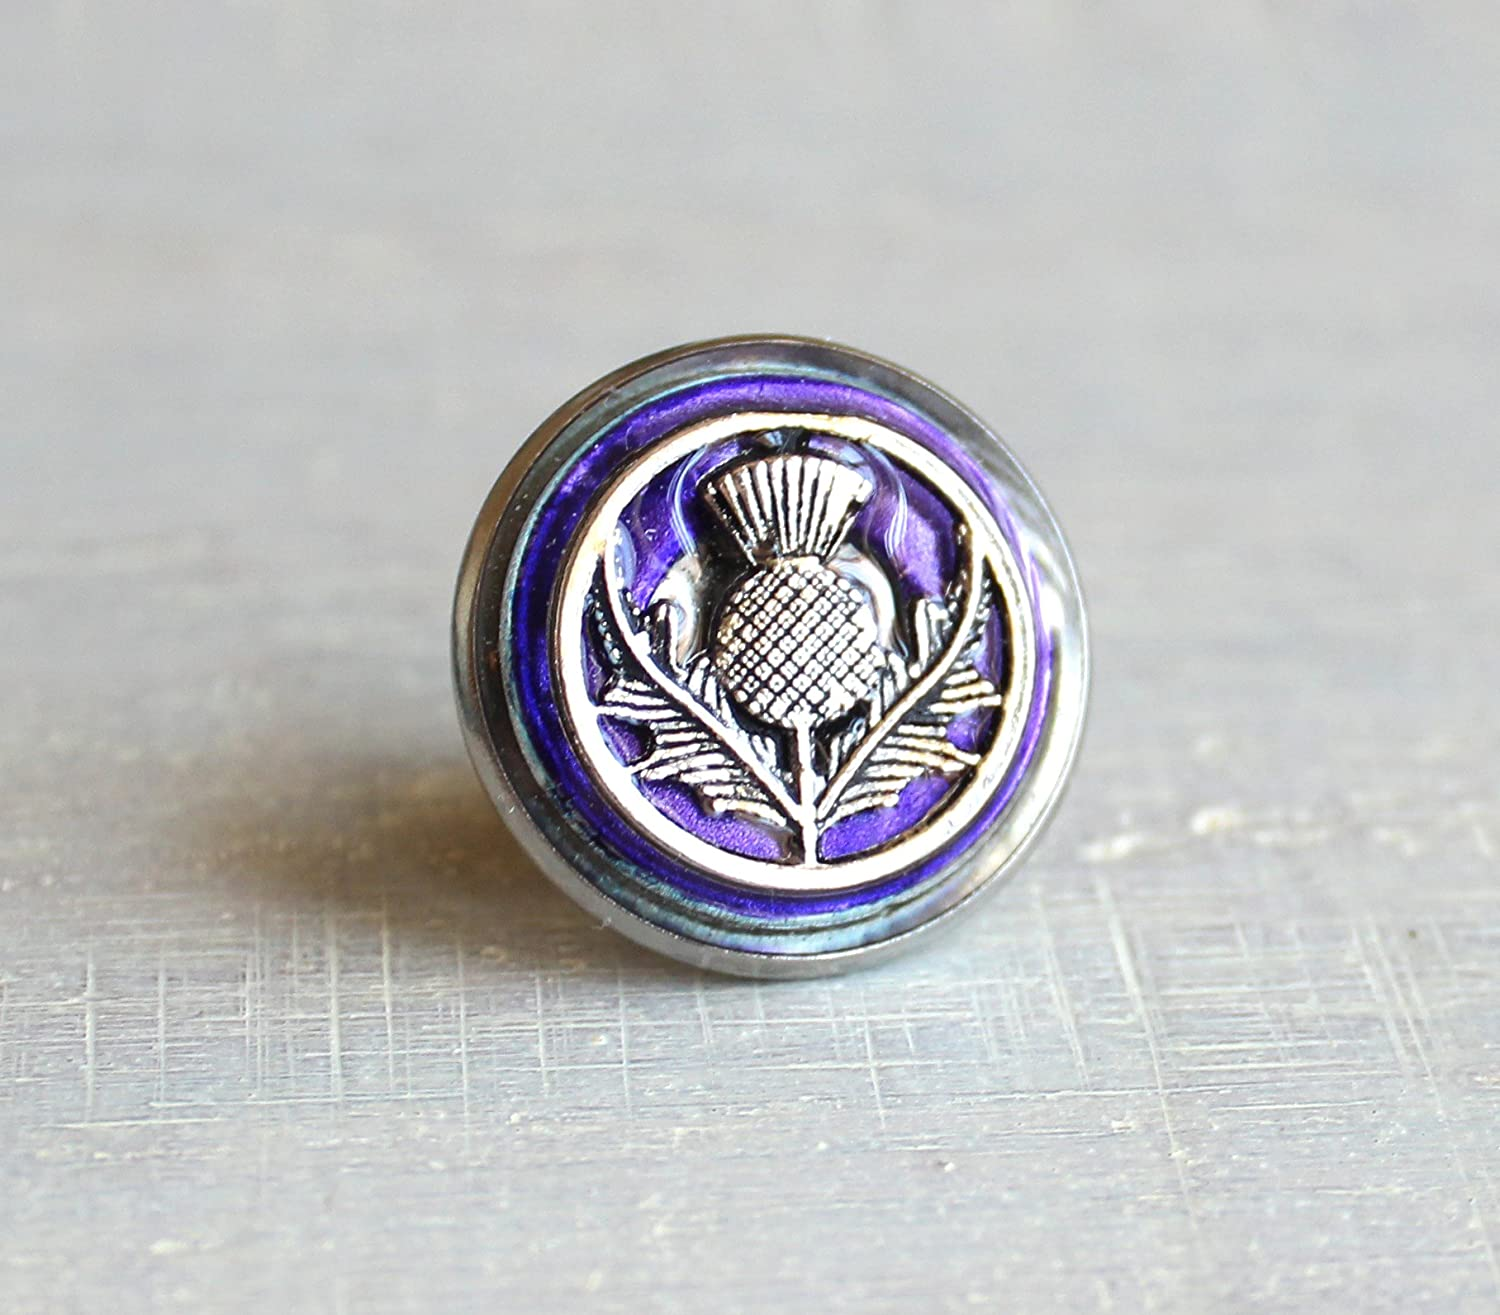 Purple Scottish thistle tie tack / lapel pin.